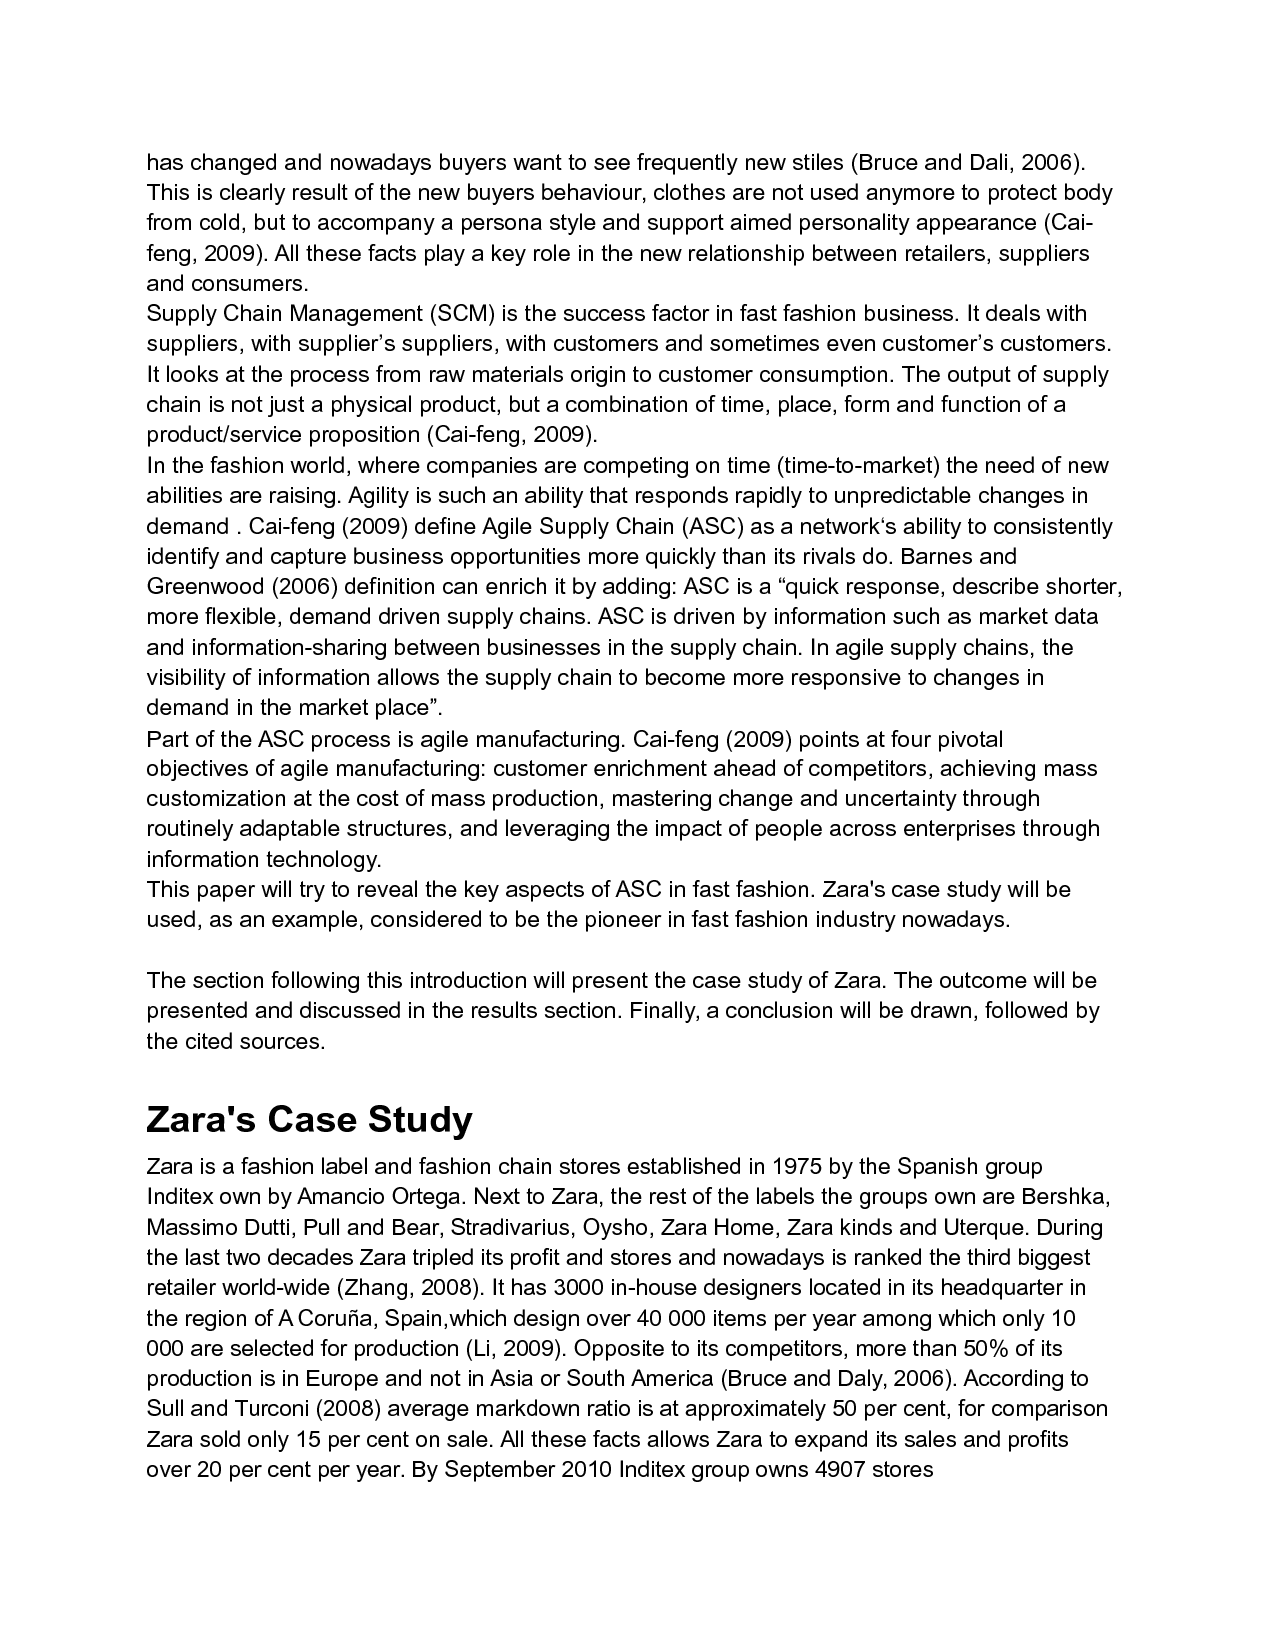 agile supply chain zara s case study analysis studypool ukabstractpurpose the purpose of this paper is to assess and document the key aspects in zara s success